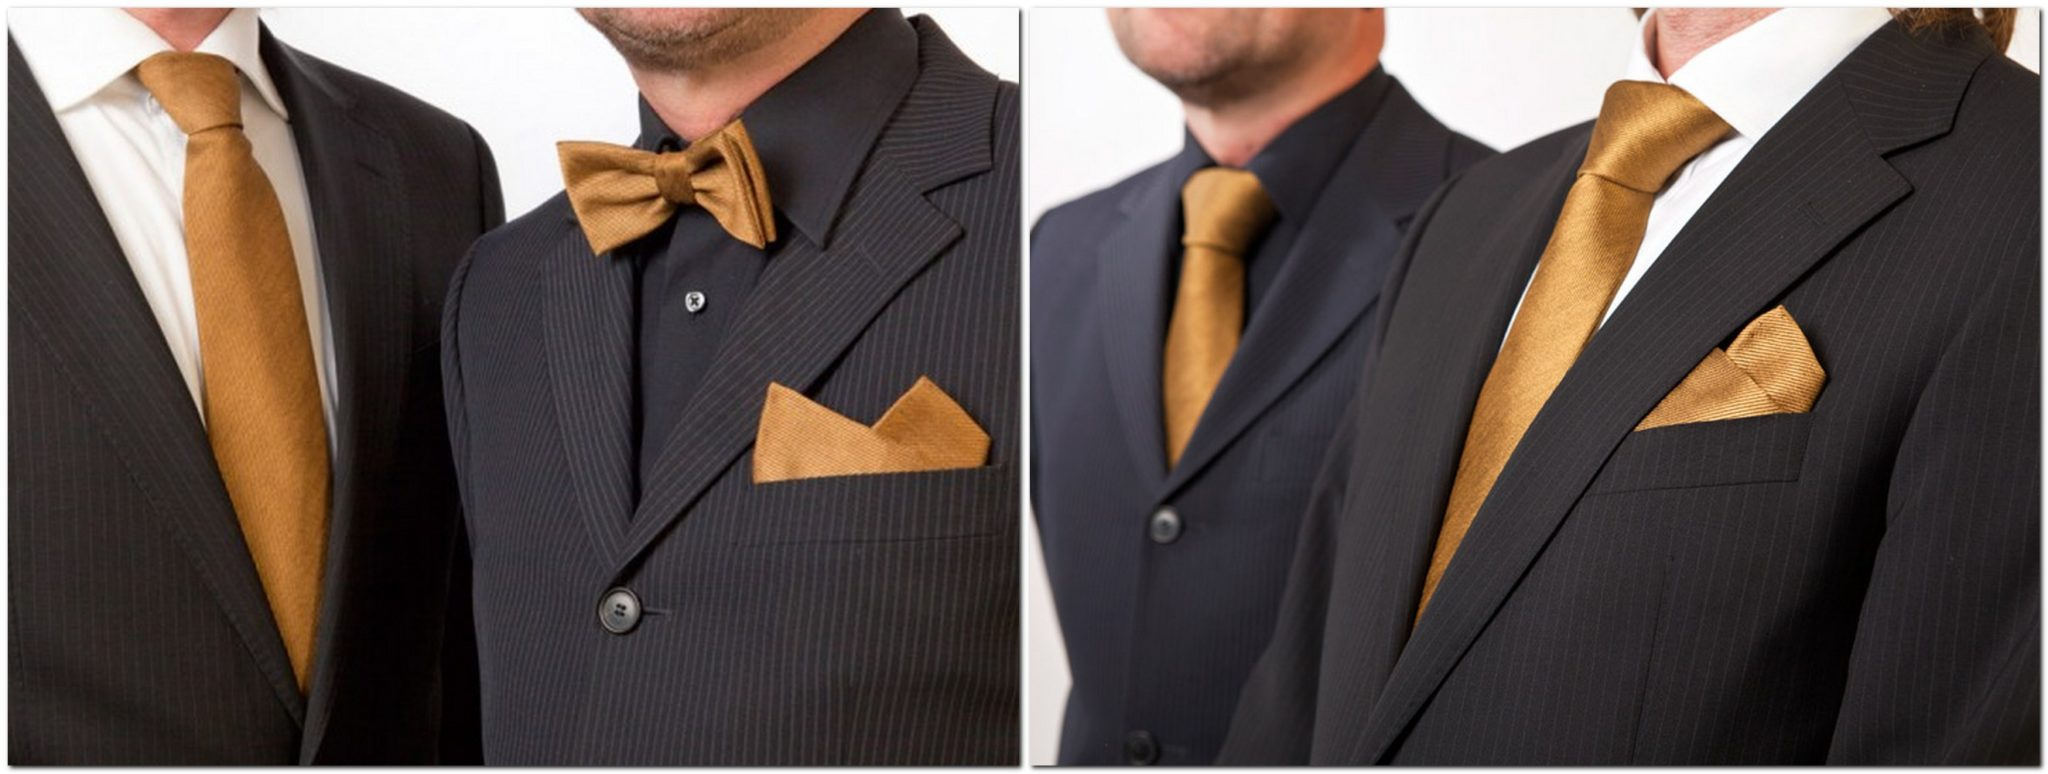 Gold Tie by EMPA